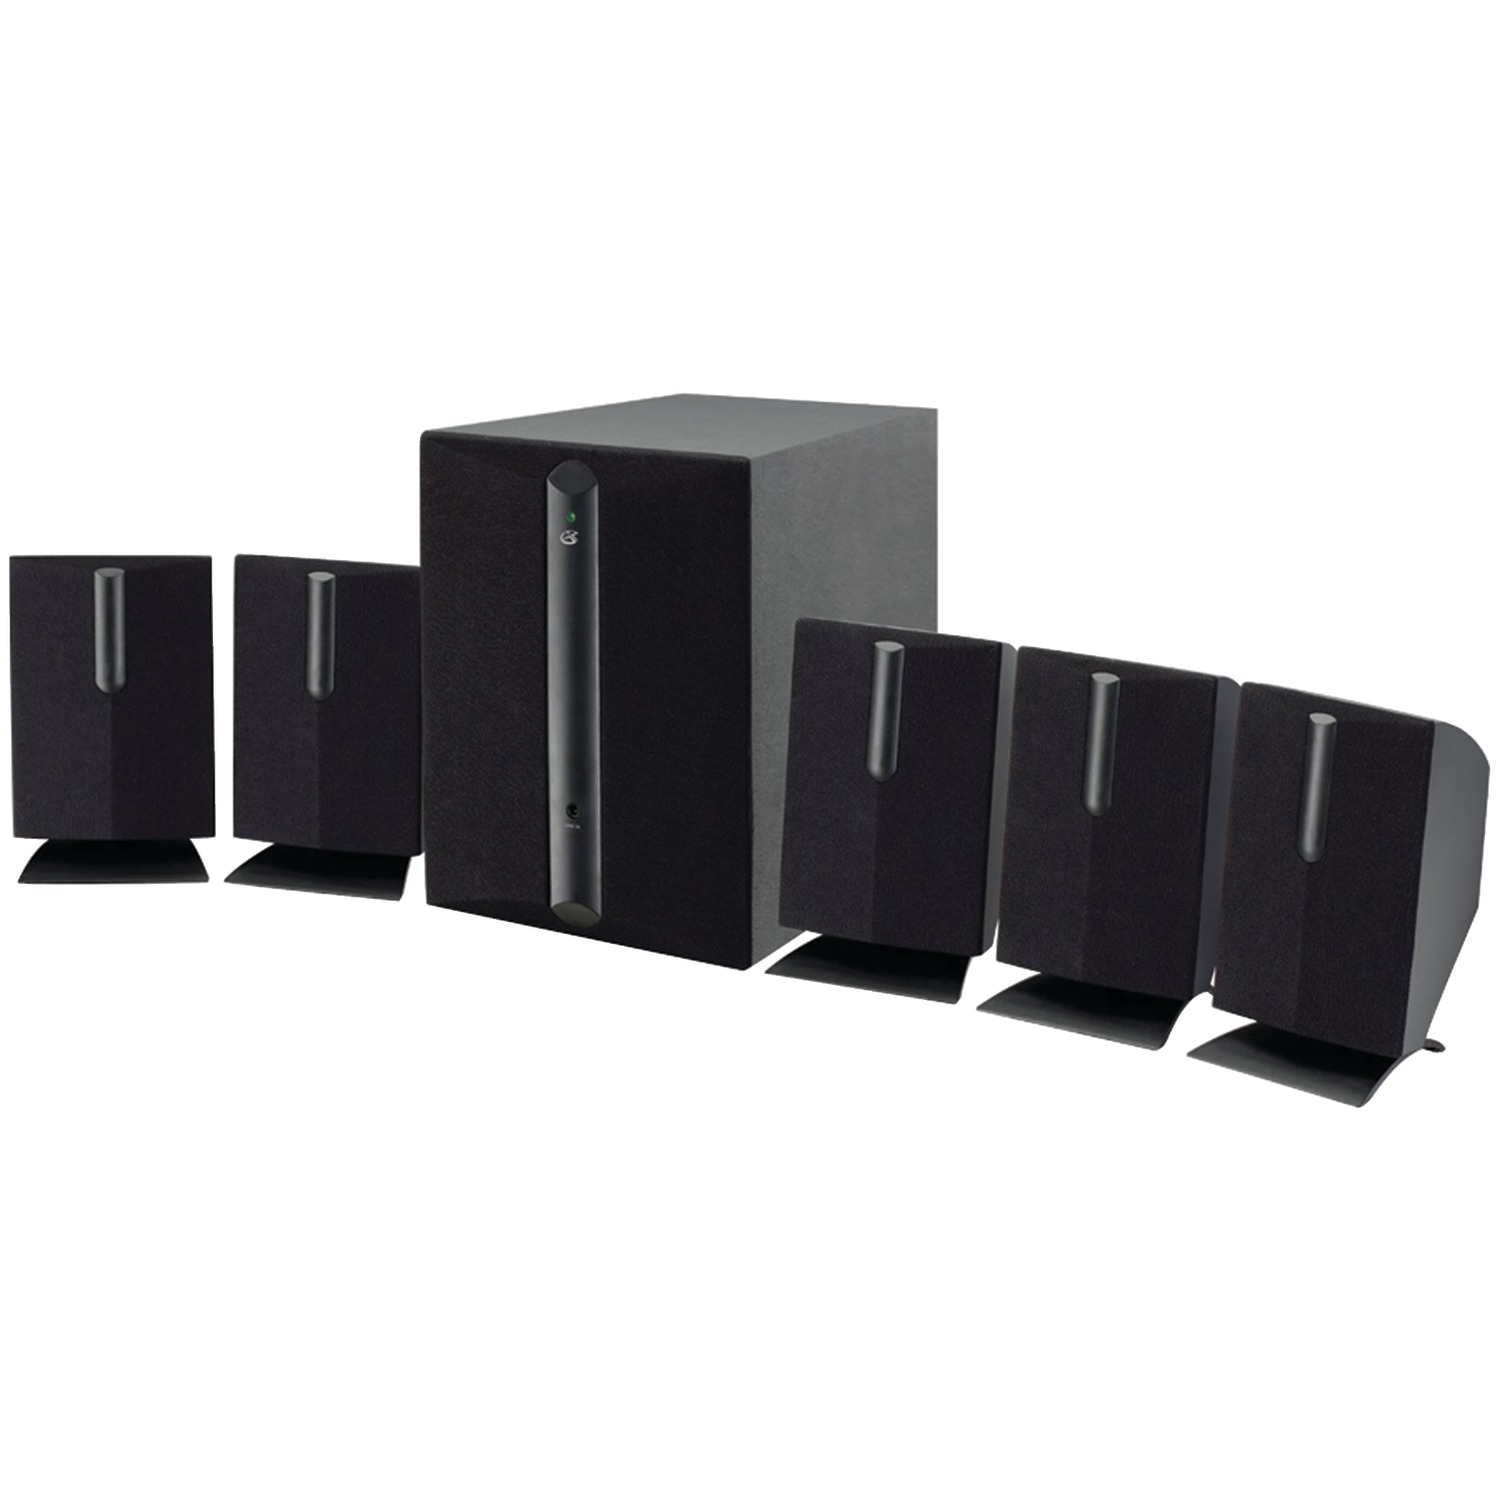 GPX� HT050B 5.1-Channel HOME THEATER Speaker System